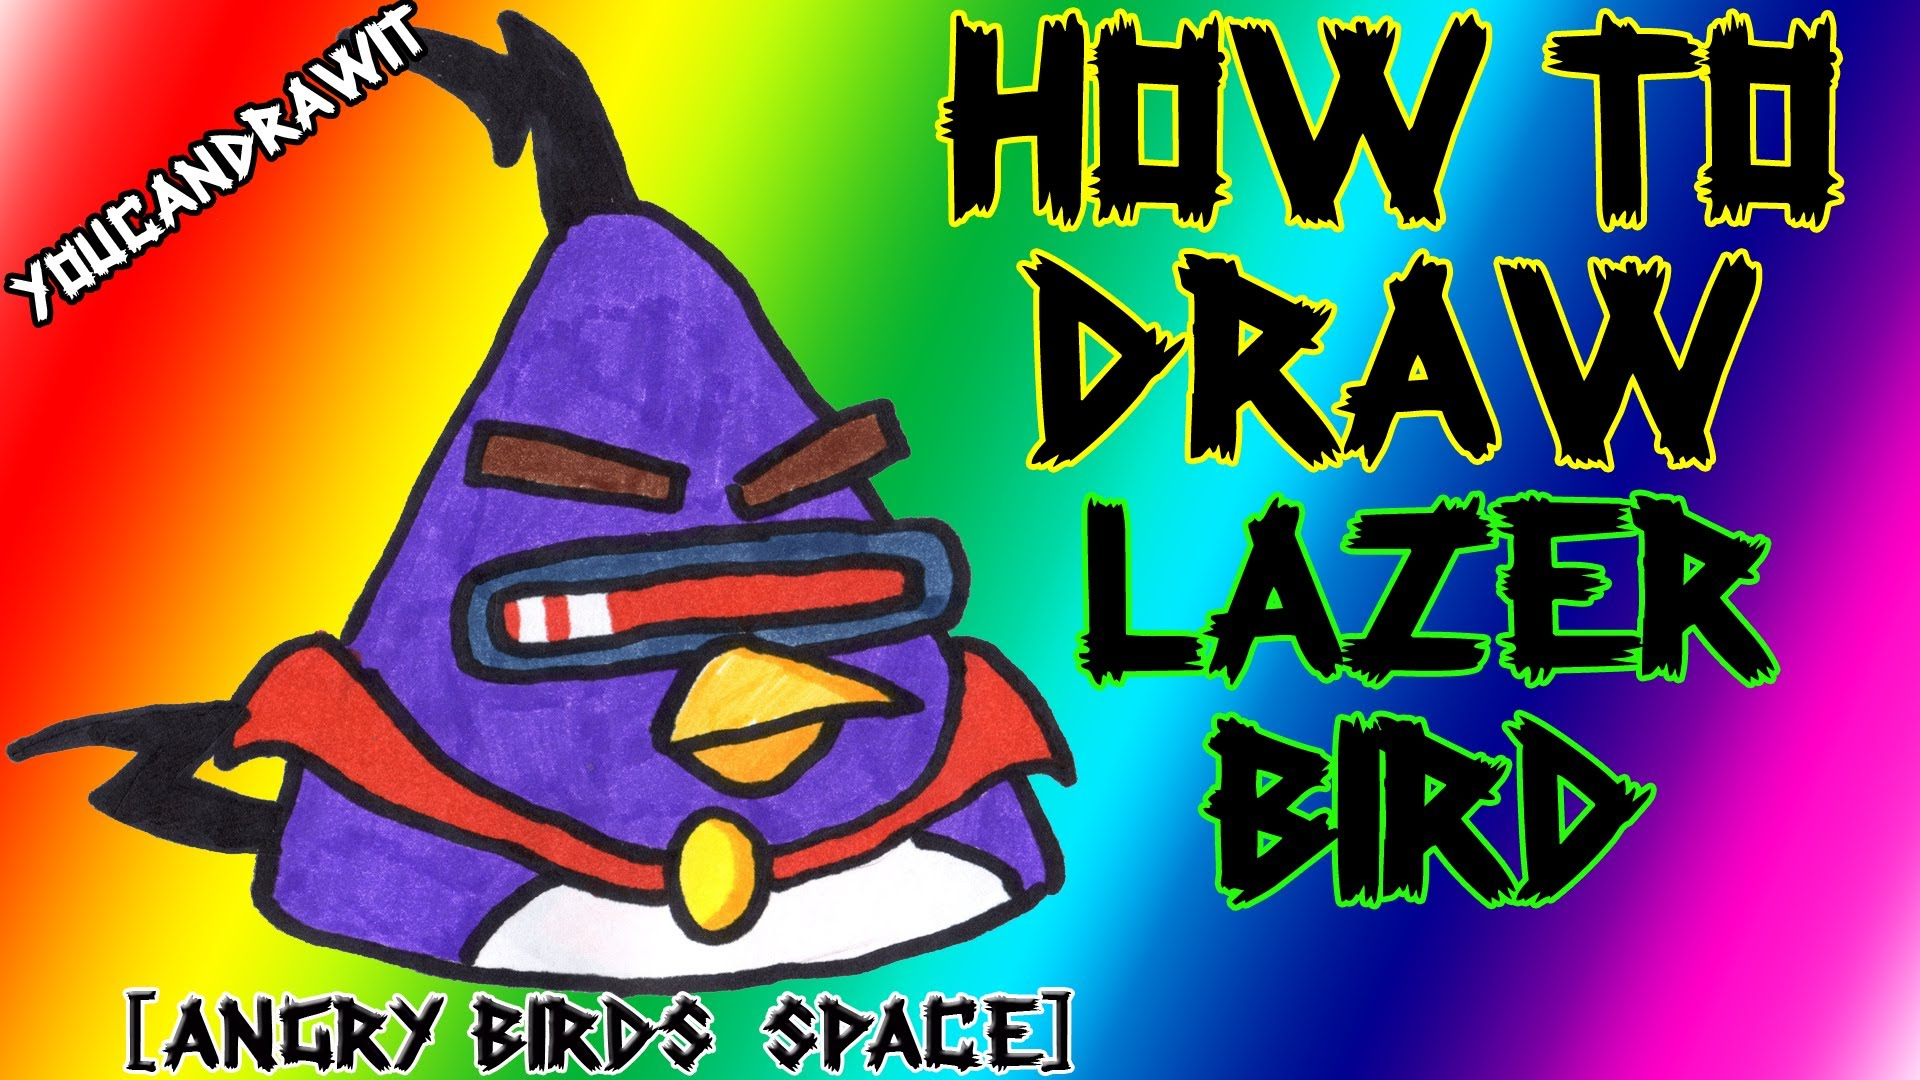 1920x1080 How To Draw Space Lazer Bird From Angry Birds Space